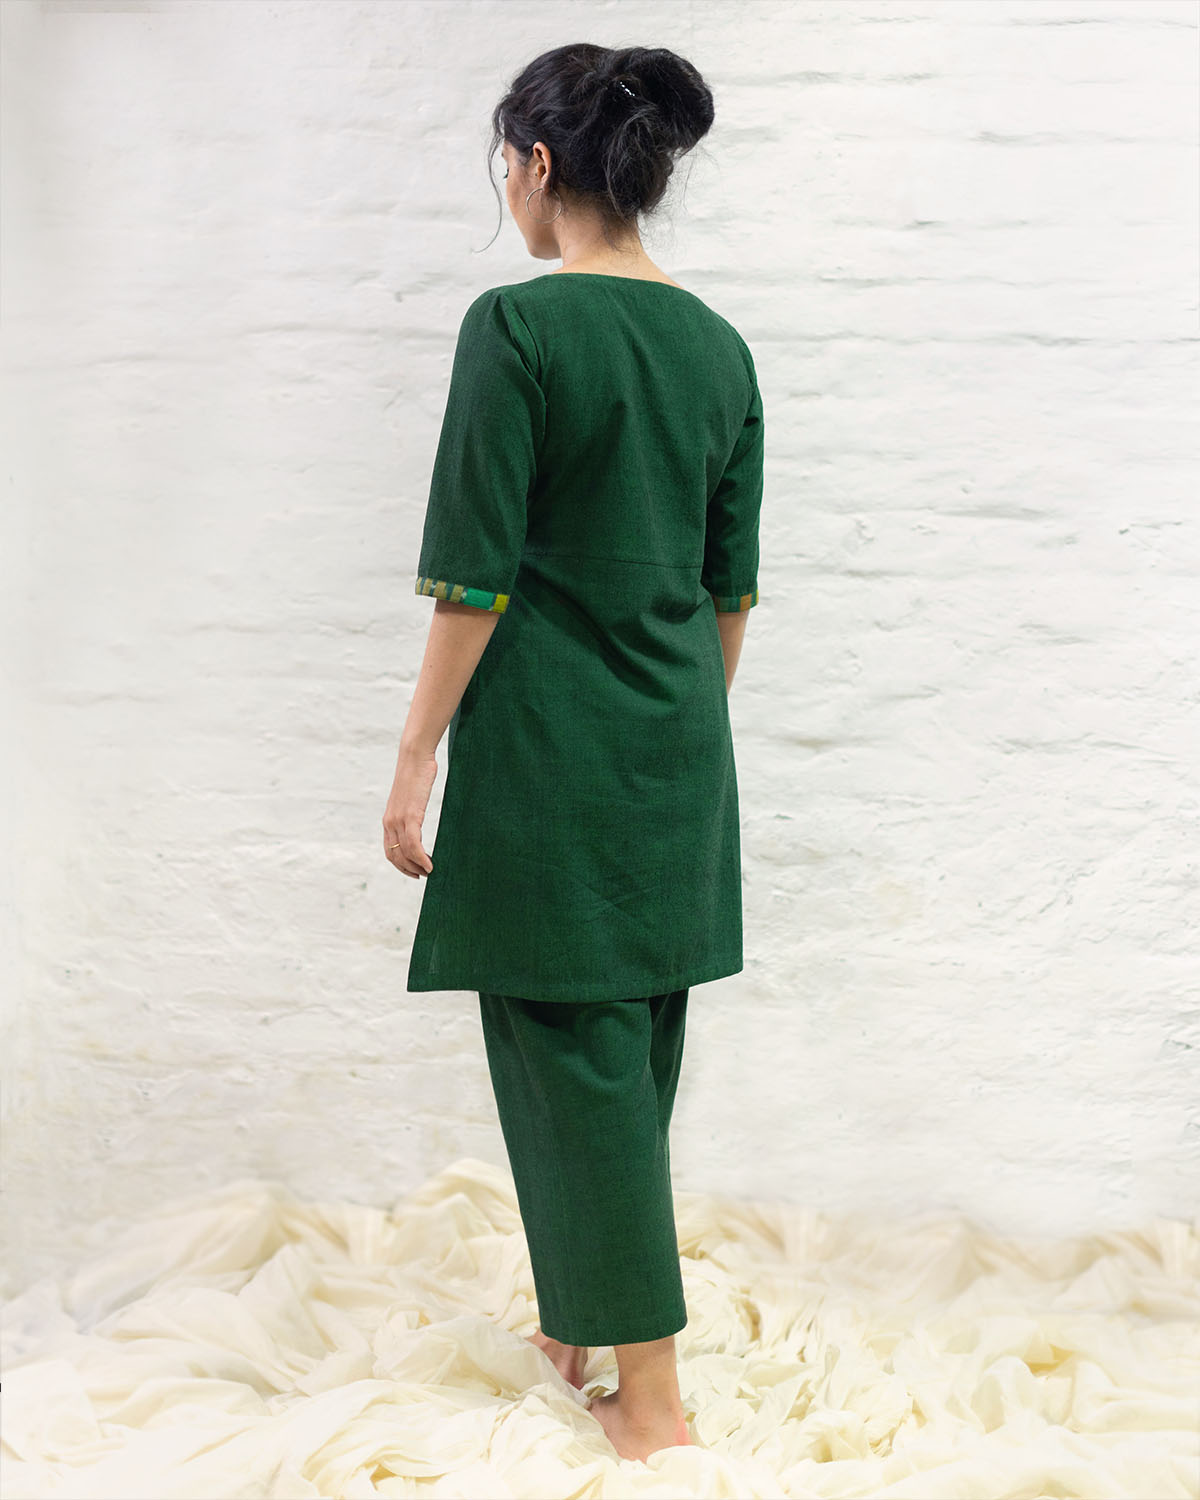 catalog/AA-Summer Musings/green2.jpg